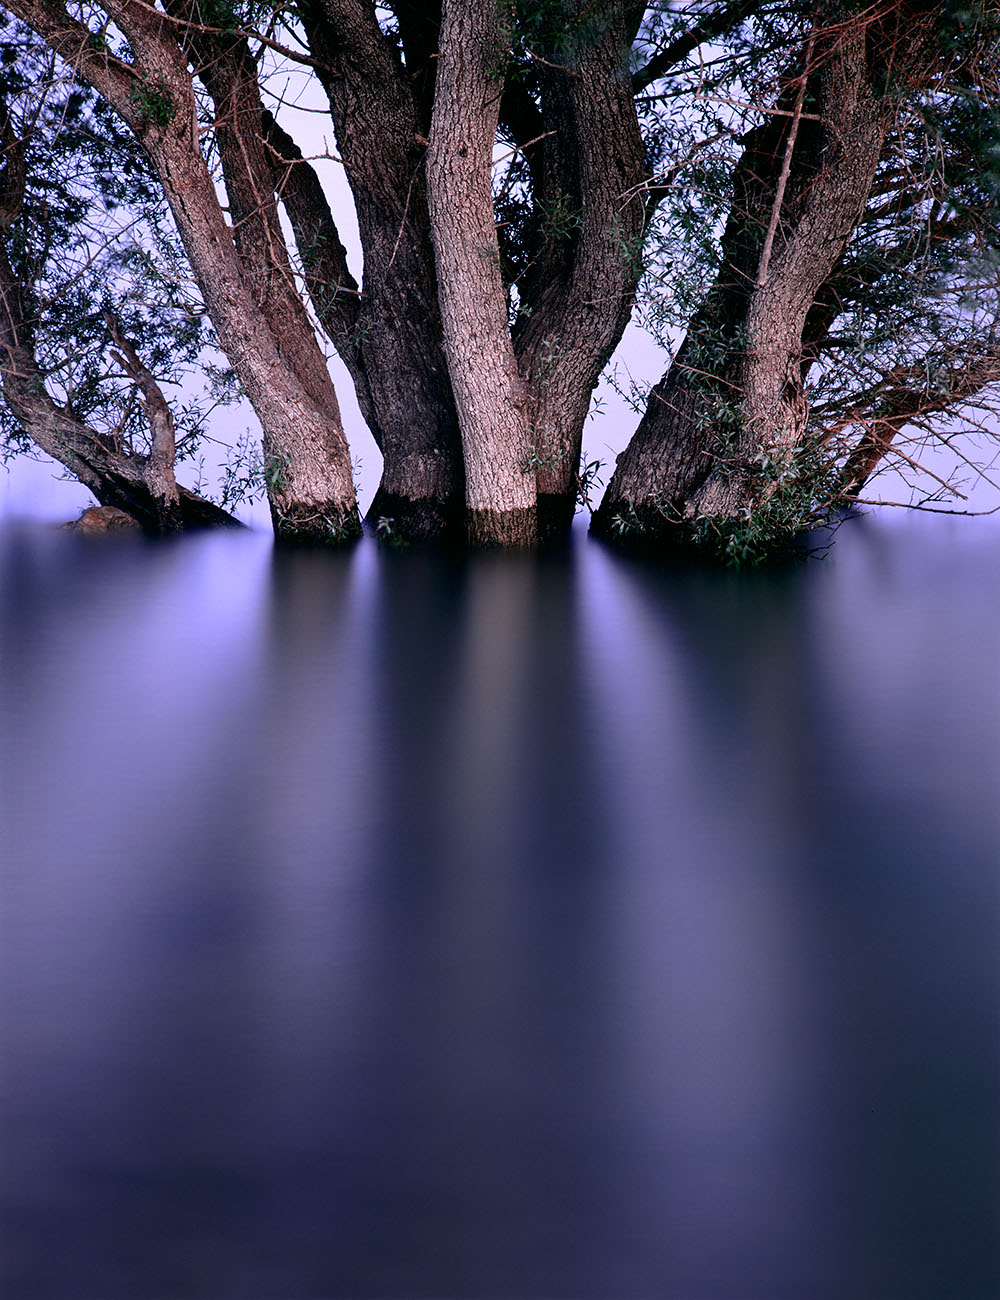 ARCHIVO - FERNANDO PUCHE,  NATURE  PHOTOGRAPHY  BEYOND  OBVIOUS